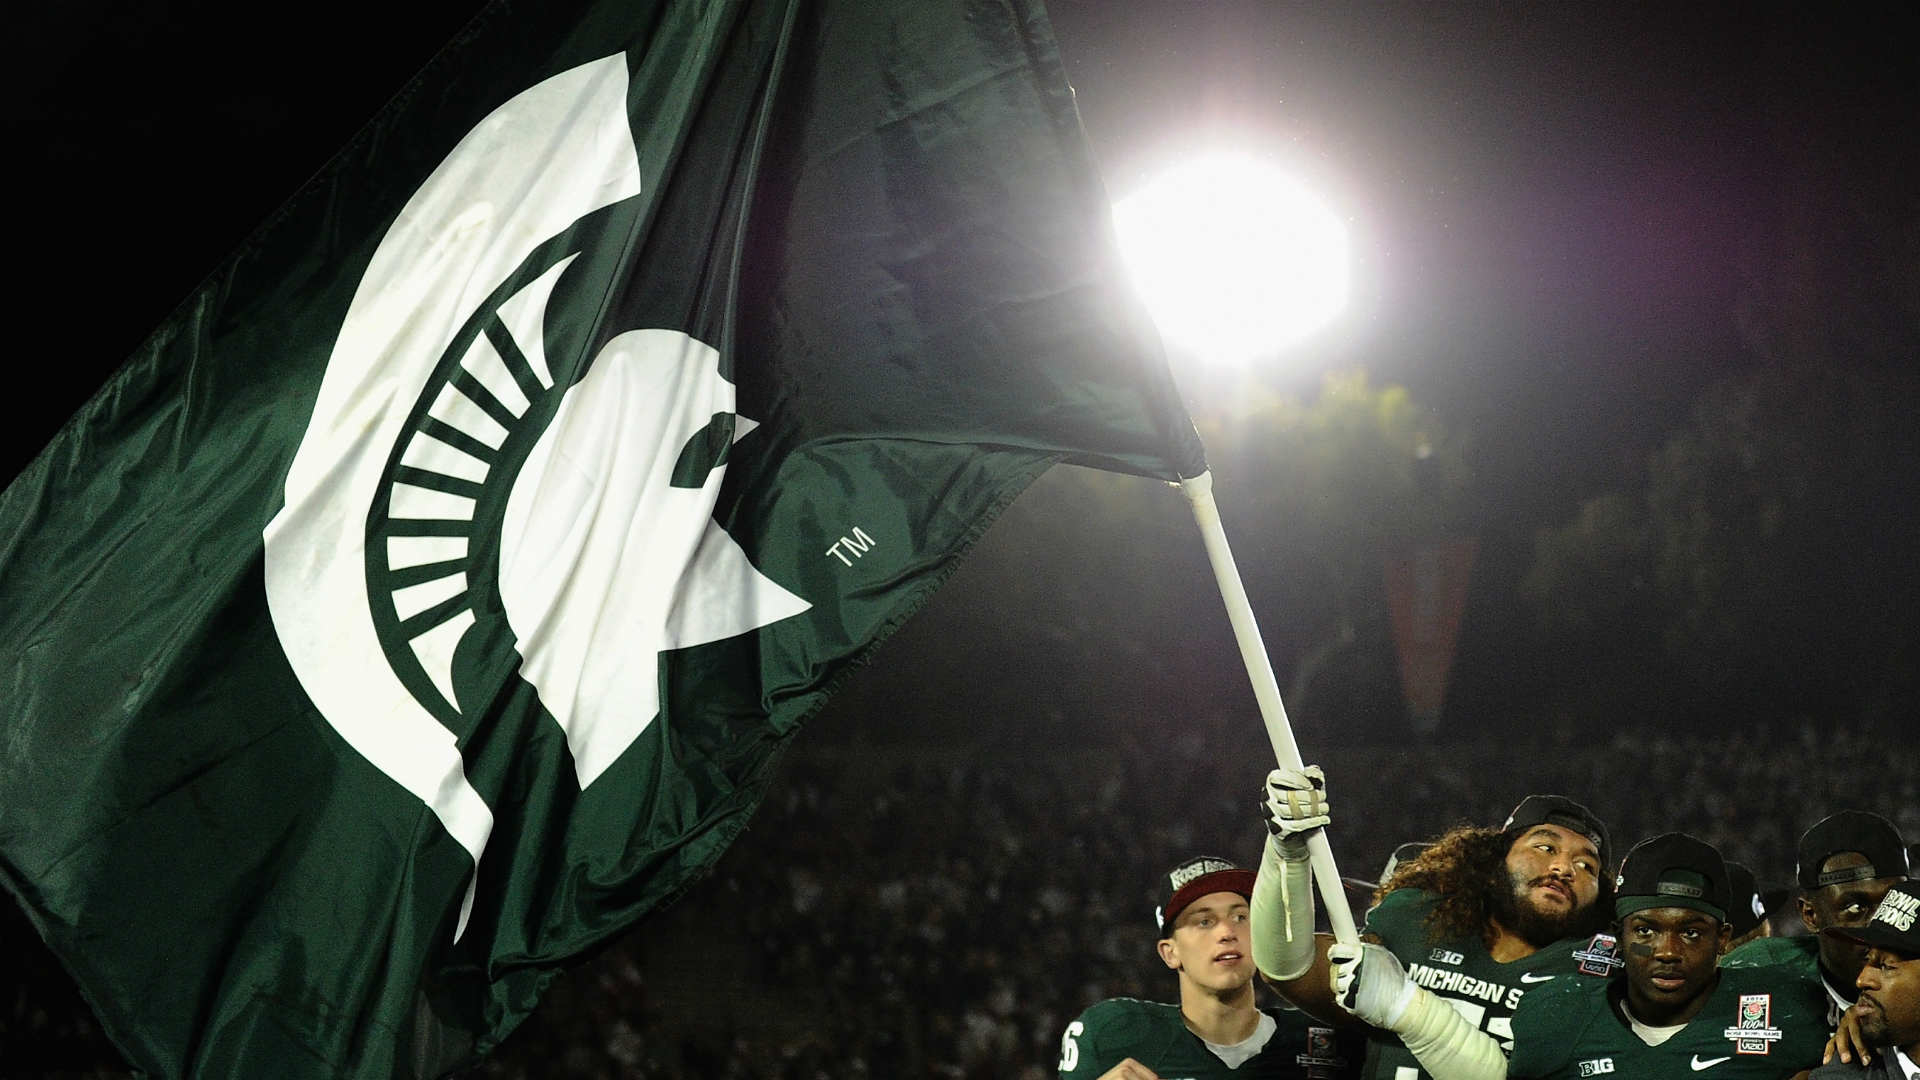 Michigan state turned down hbo request for hard knocks style show ncaa football sporting news - Michigan state football backgrounds ...